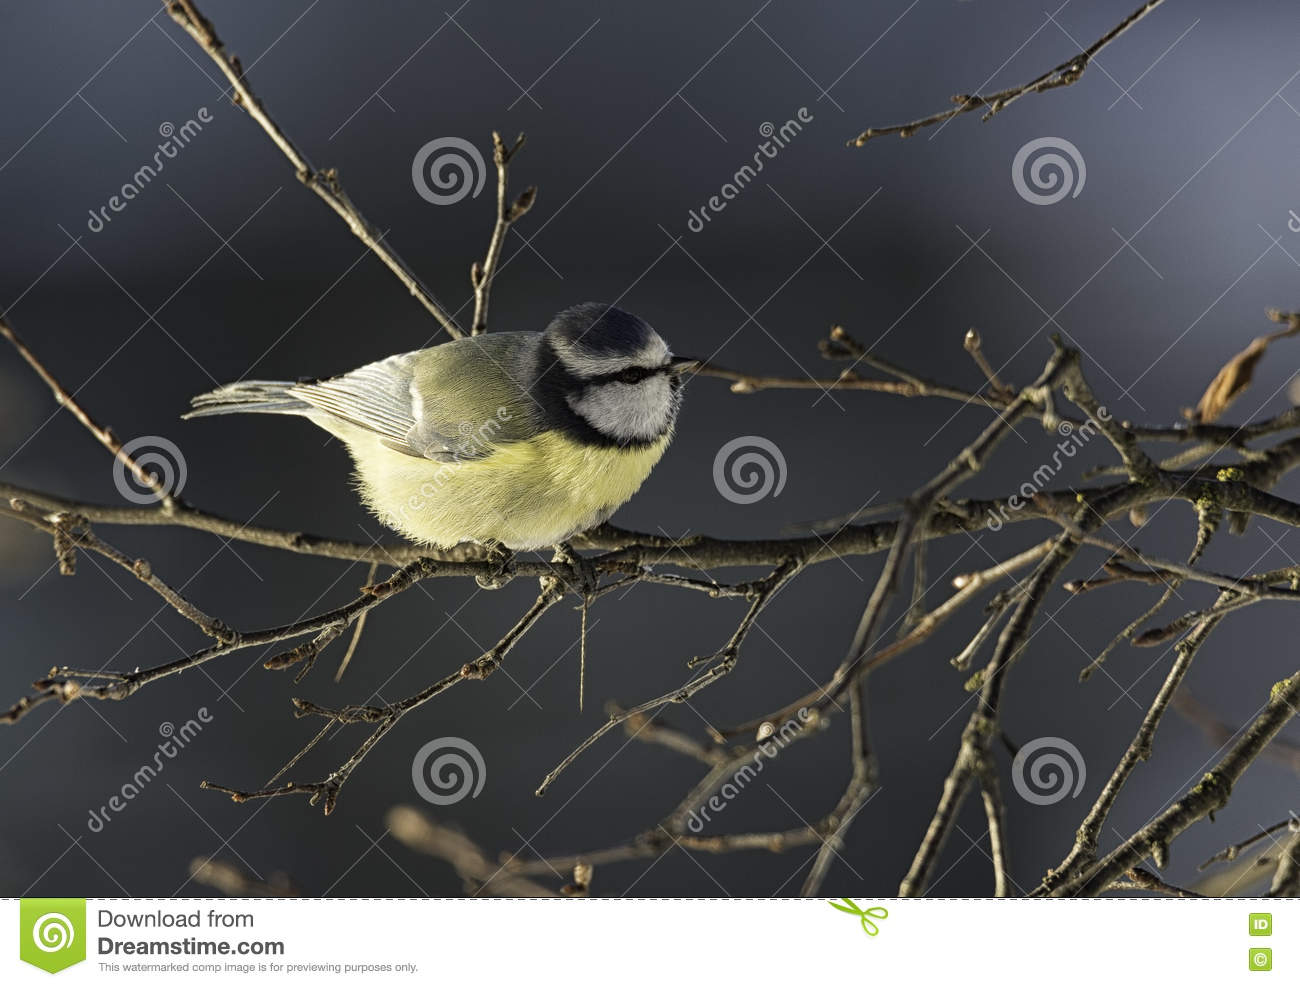 Eurasian Blue Tit clipart #11, Download drawings